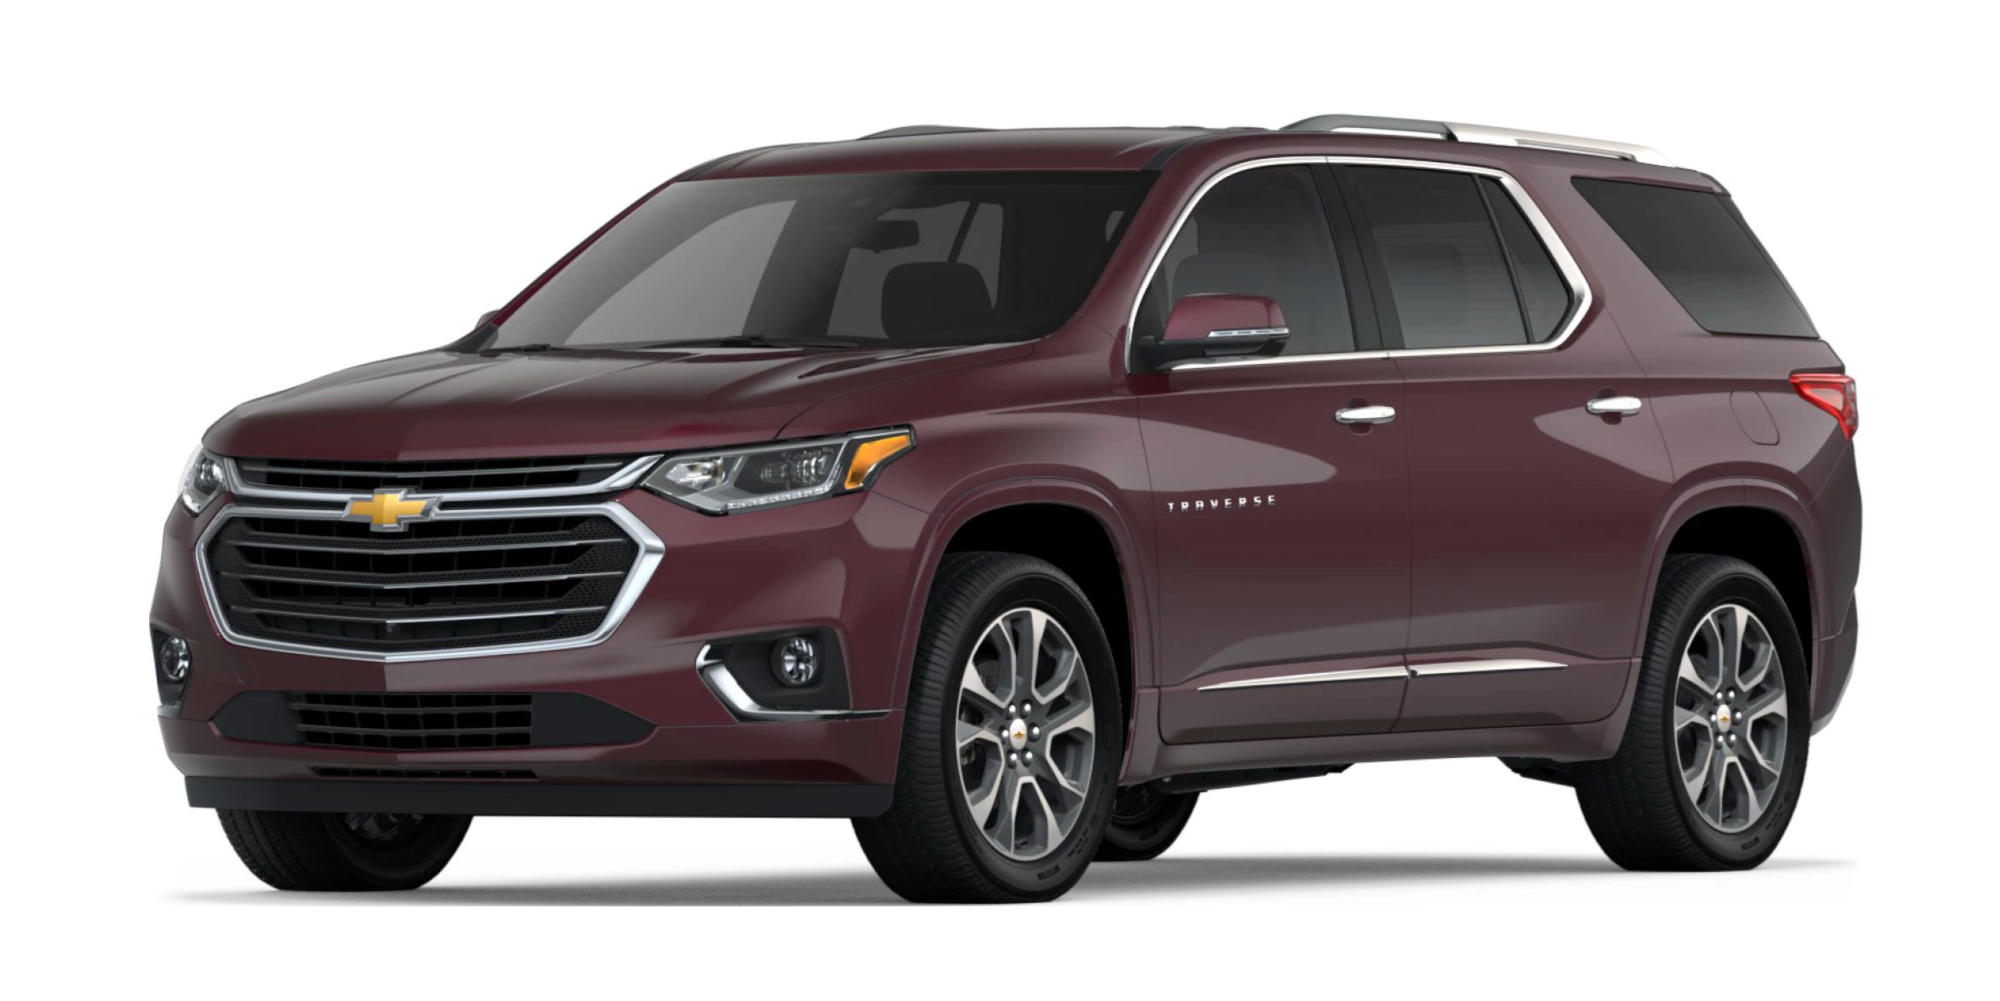 2019 Chevrolet Traverse SUV FWD 4 Door LS w/1LS Features, Specs and Price -  CarBuzz